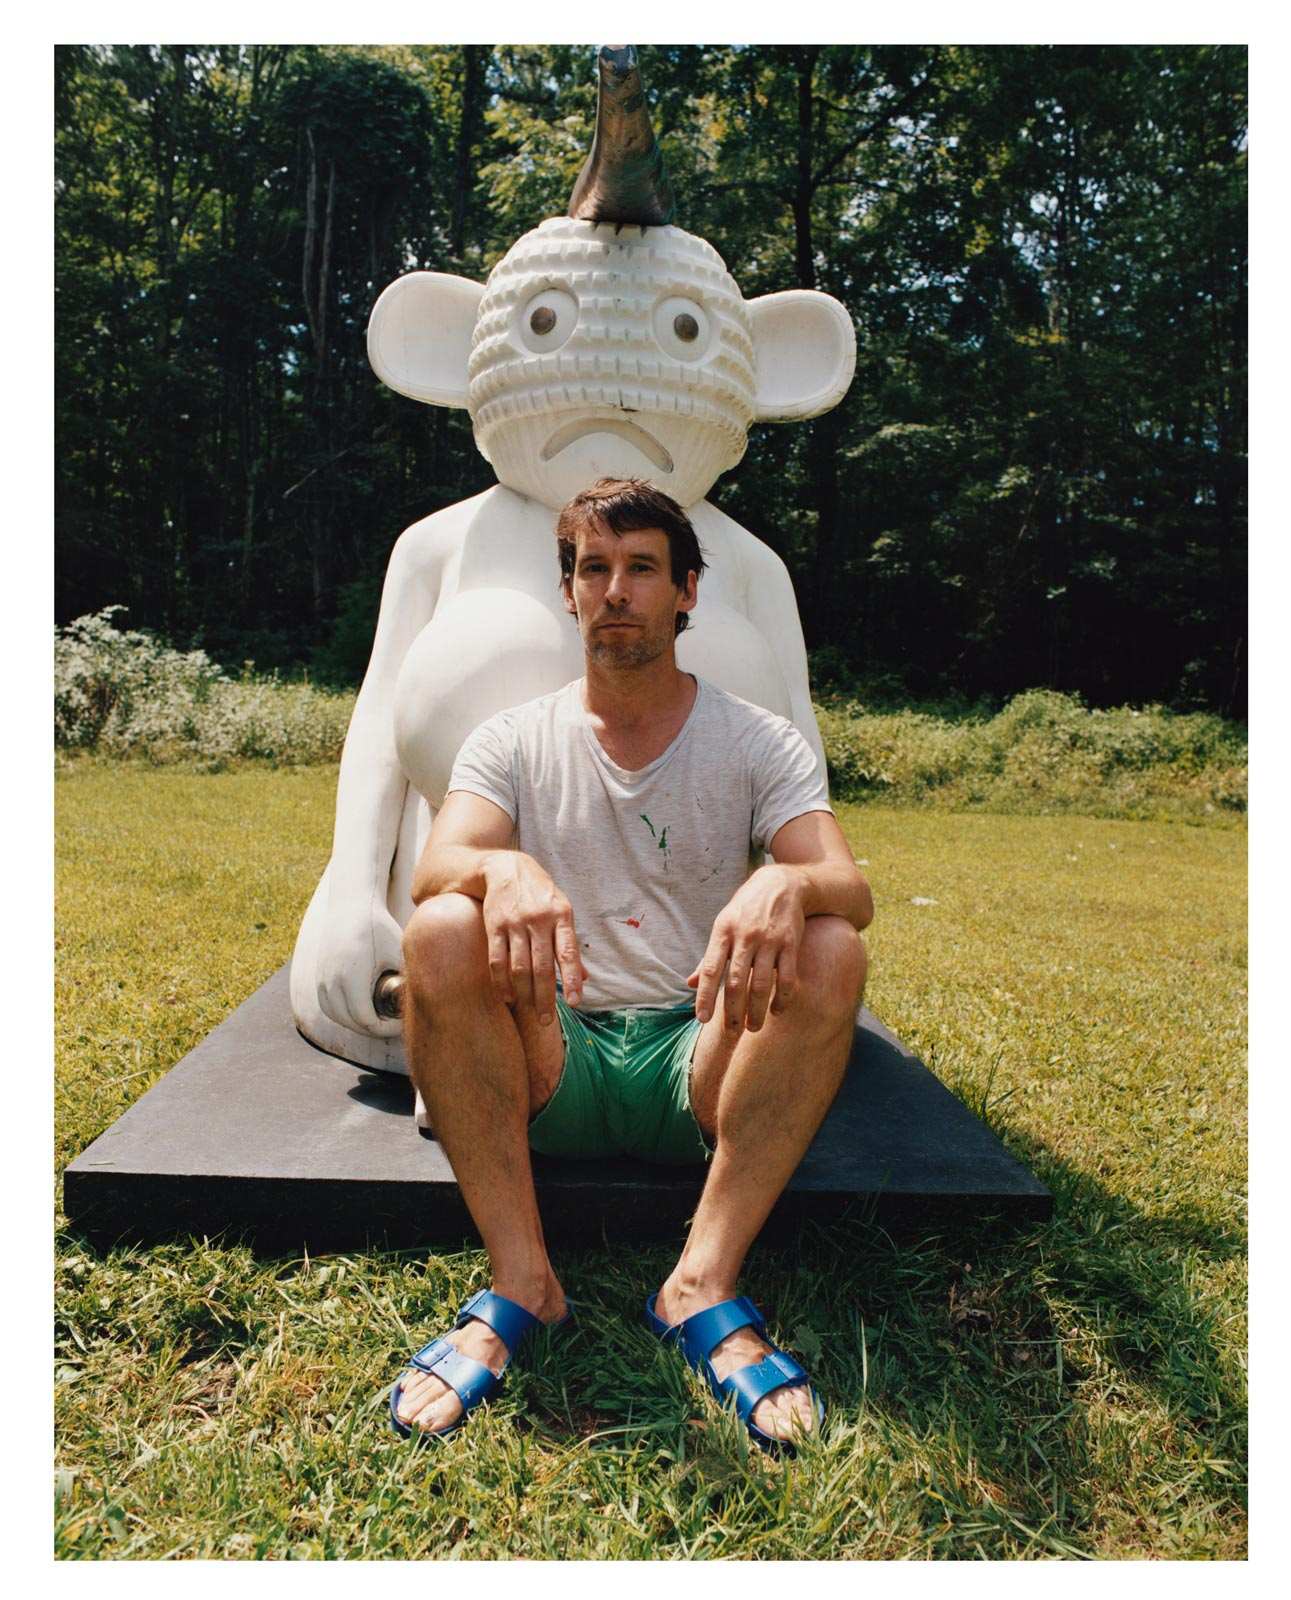 Olaf Breuning refreshes his cheeky creativity in the Hudson River Valley